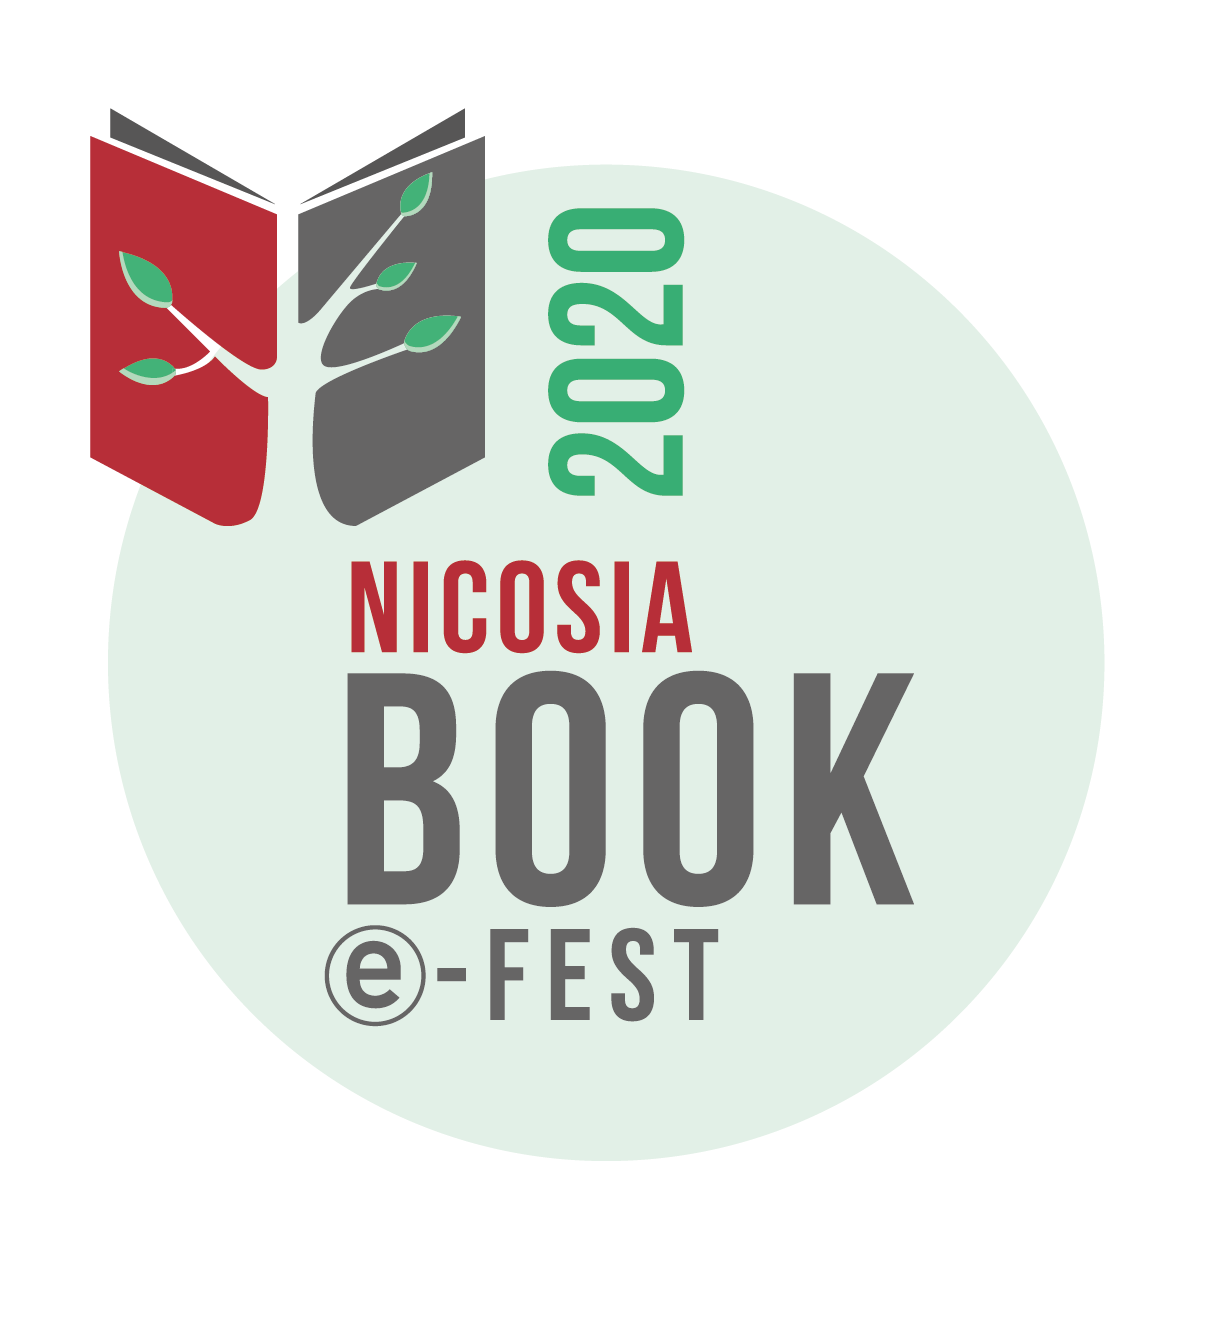 final NICOSIA BOOK e-FEST LOGOproposal-0